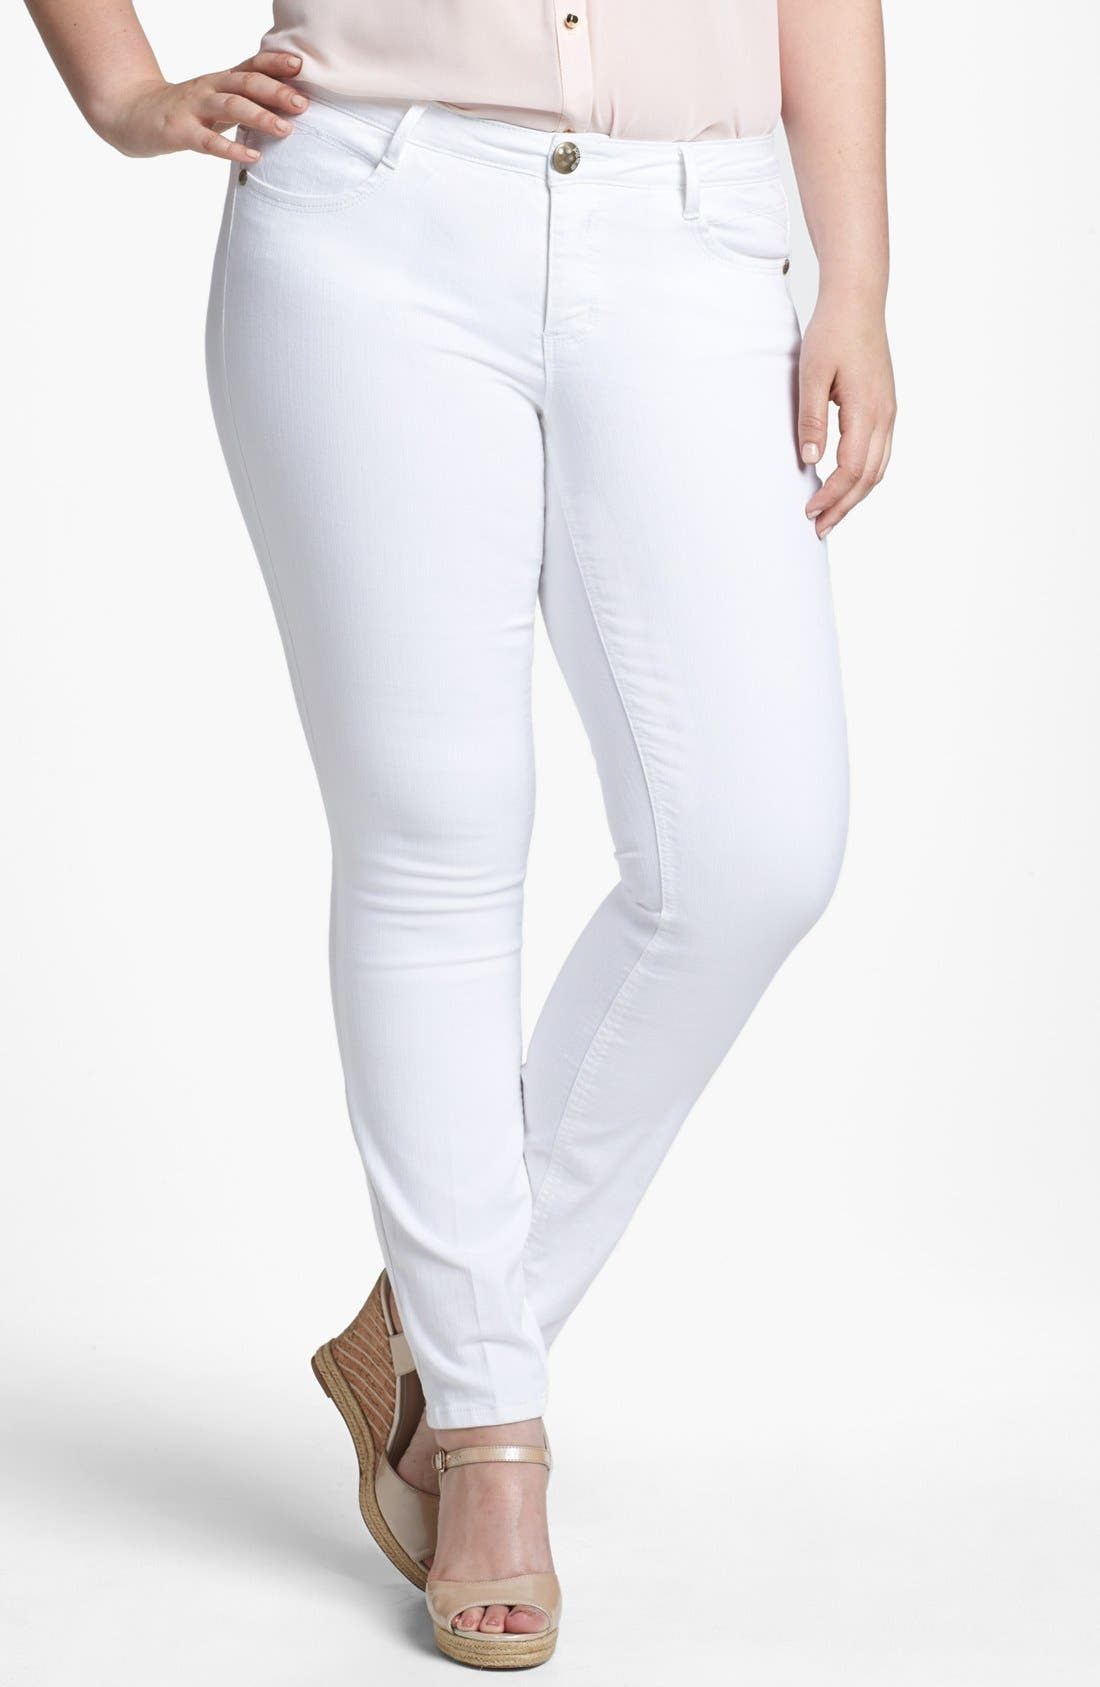 Alternate Image 1 Selected - Jolt Stretch Jeans (Juniors Plus)